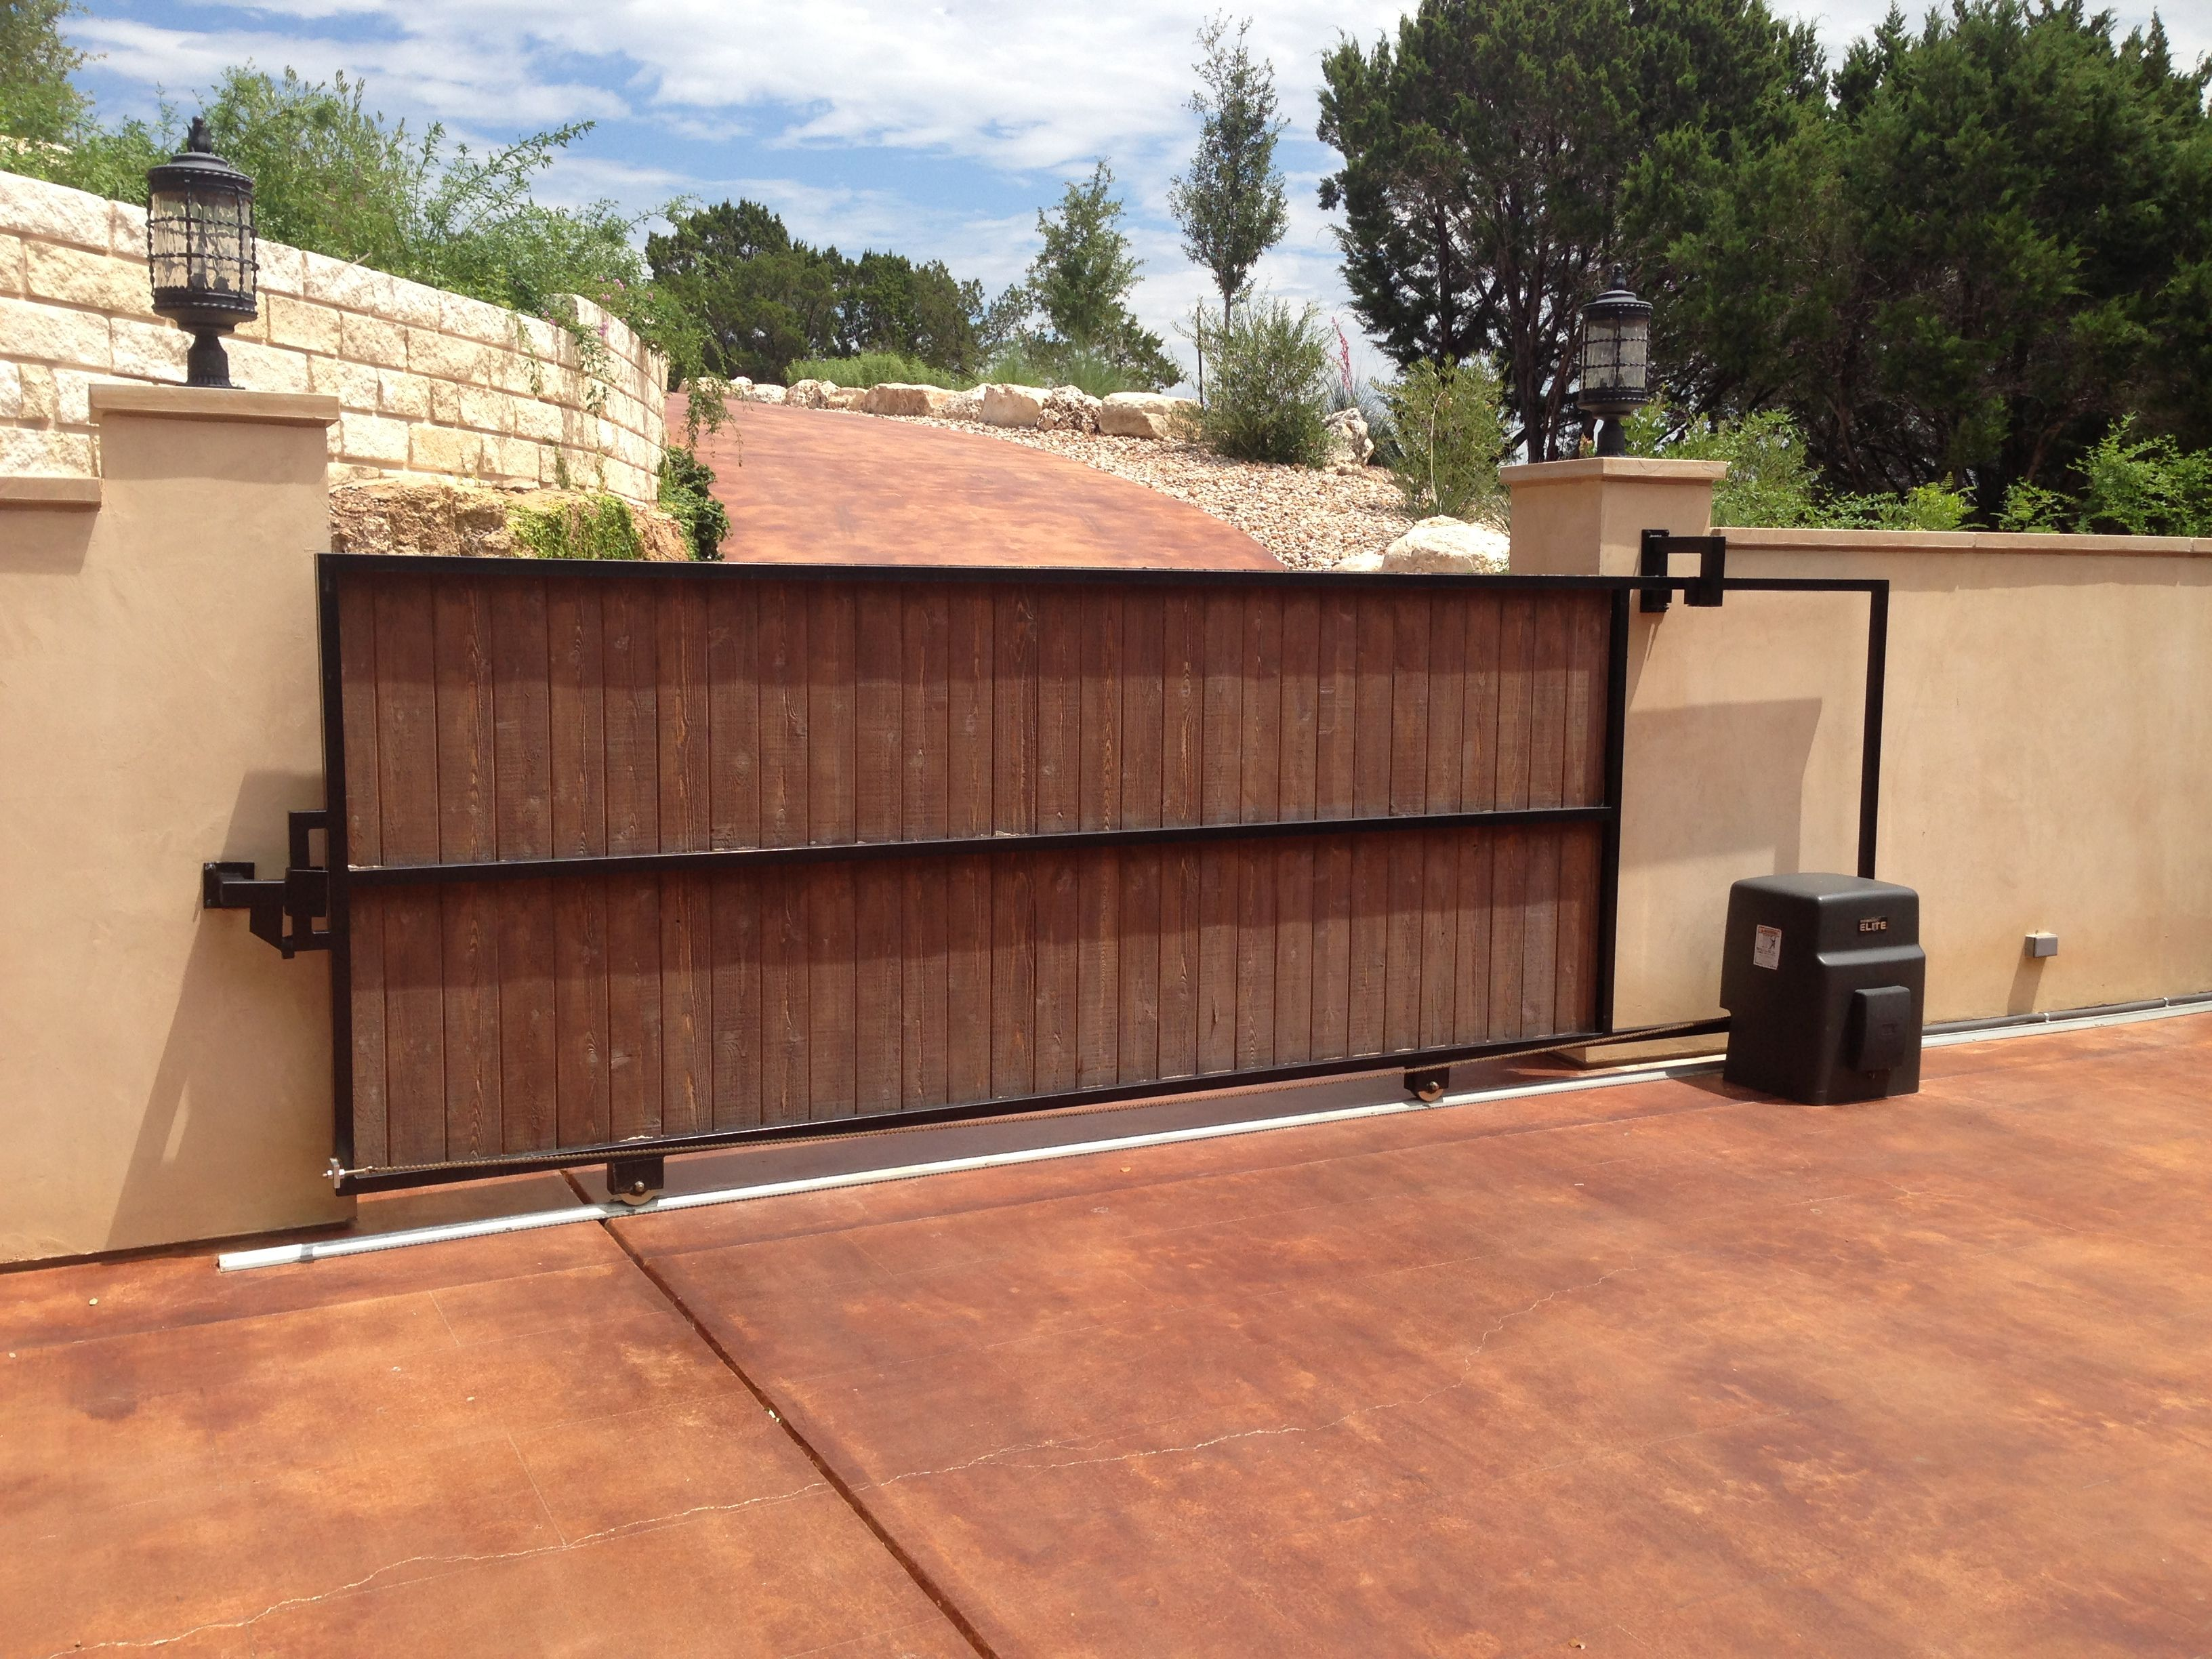 sliding driveway wood covered gate with metal frame with